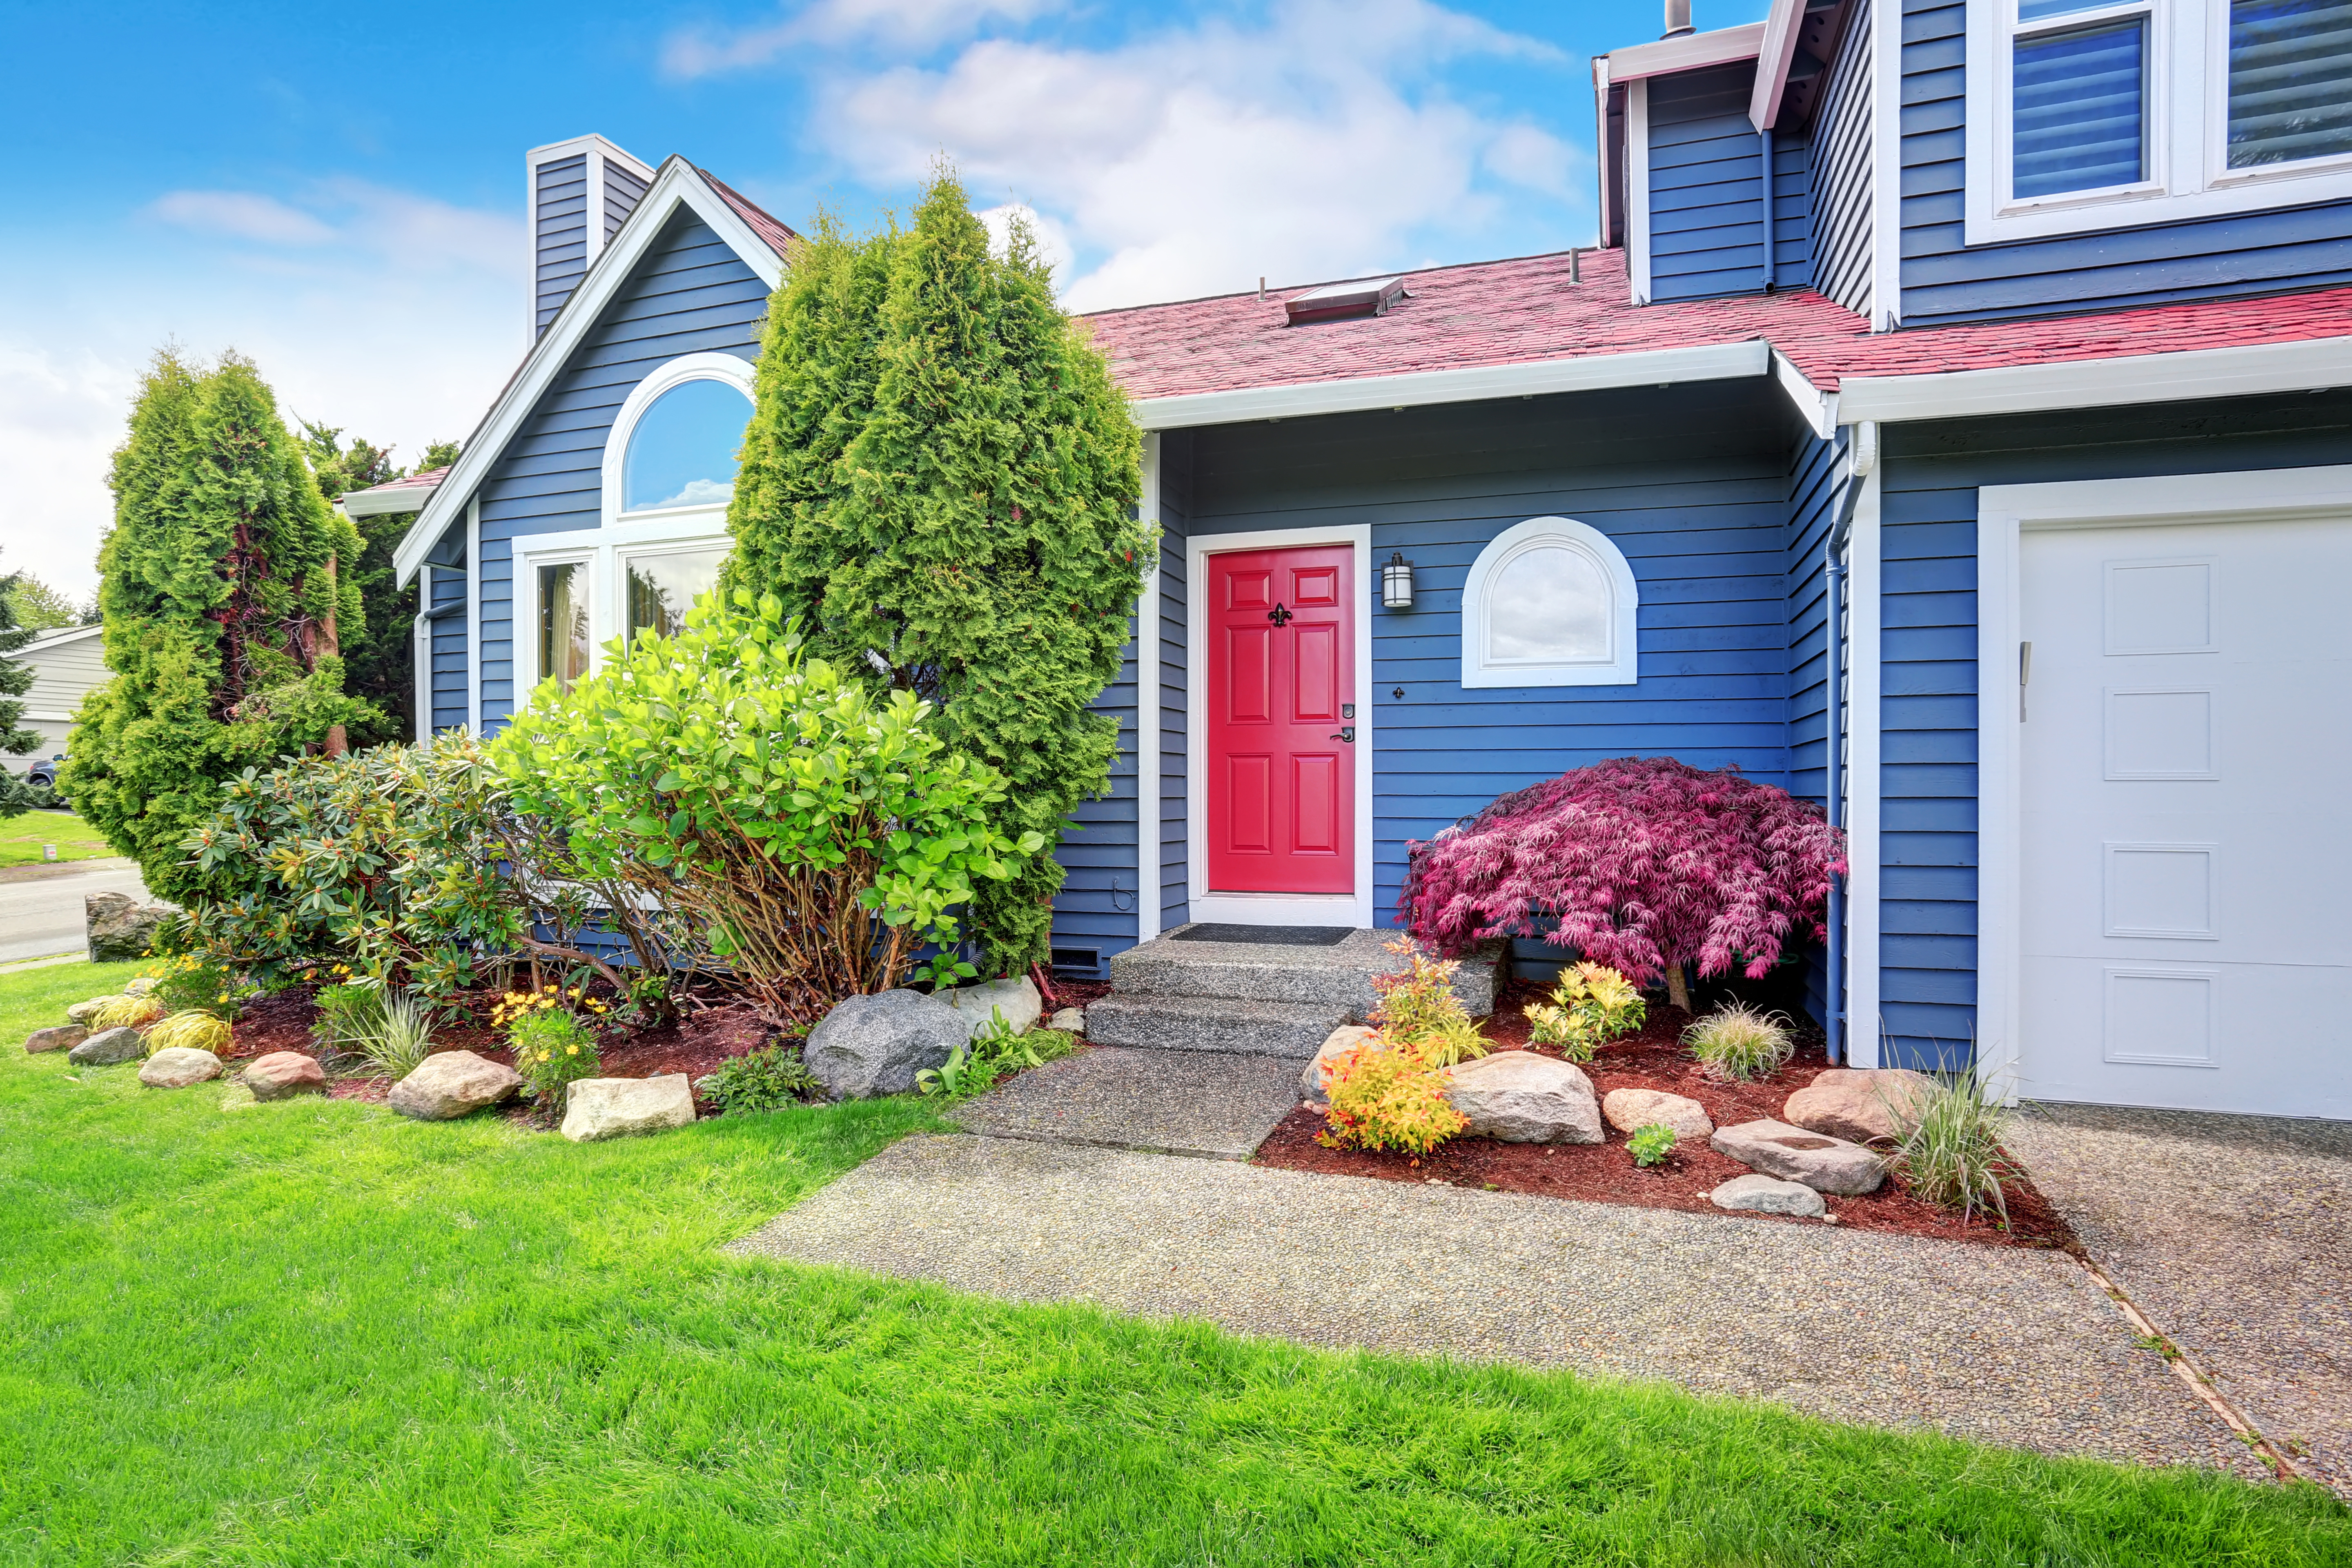 Curb Appeal, Home Maintenance, Summer Tips, Summer, Save Money, Home